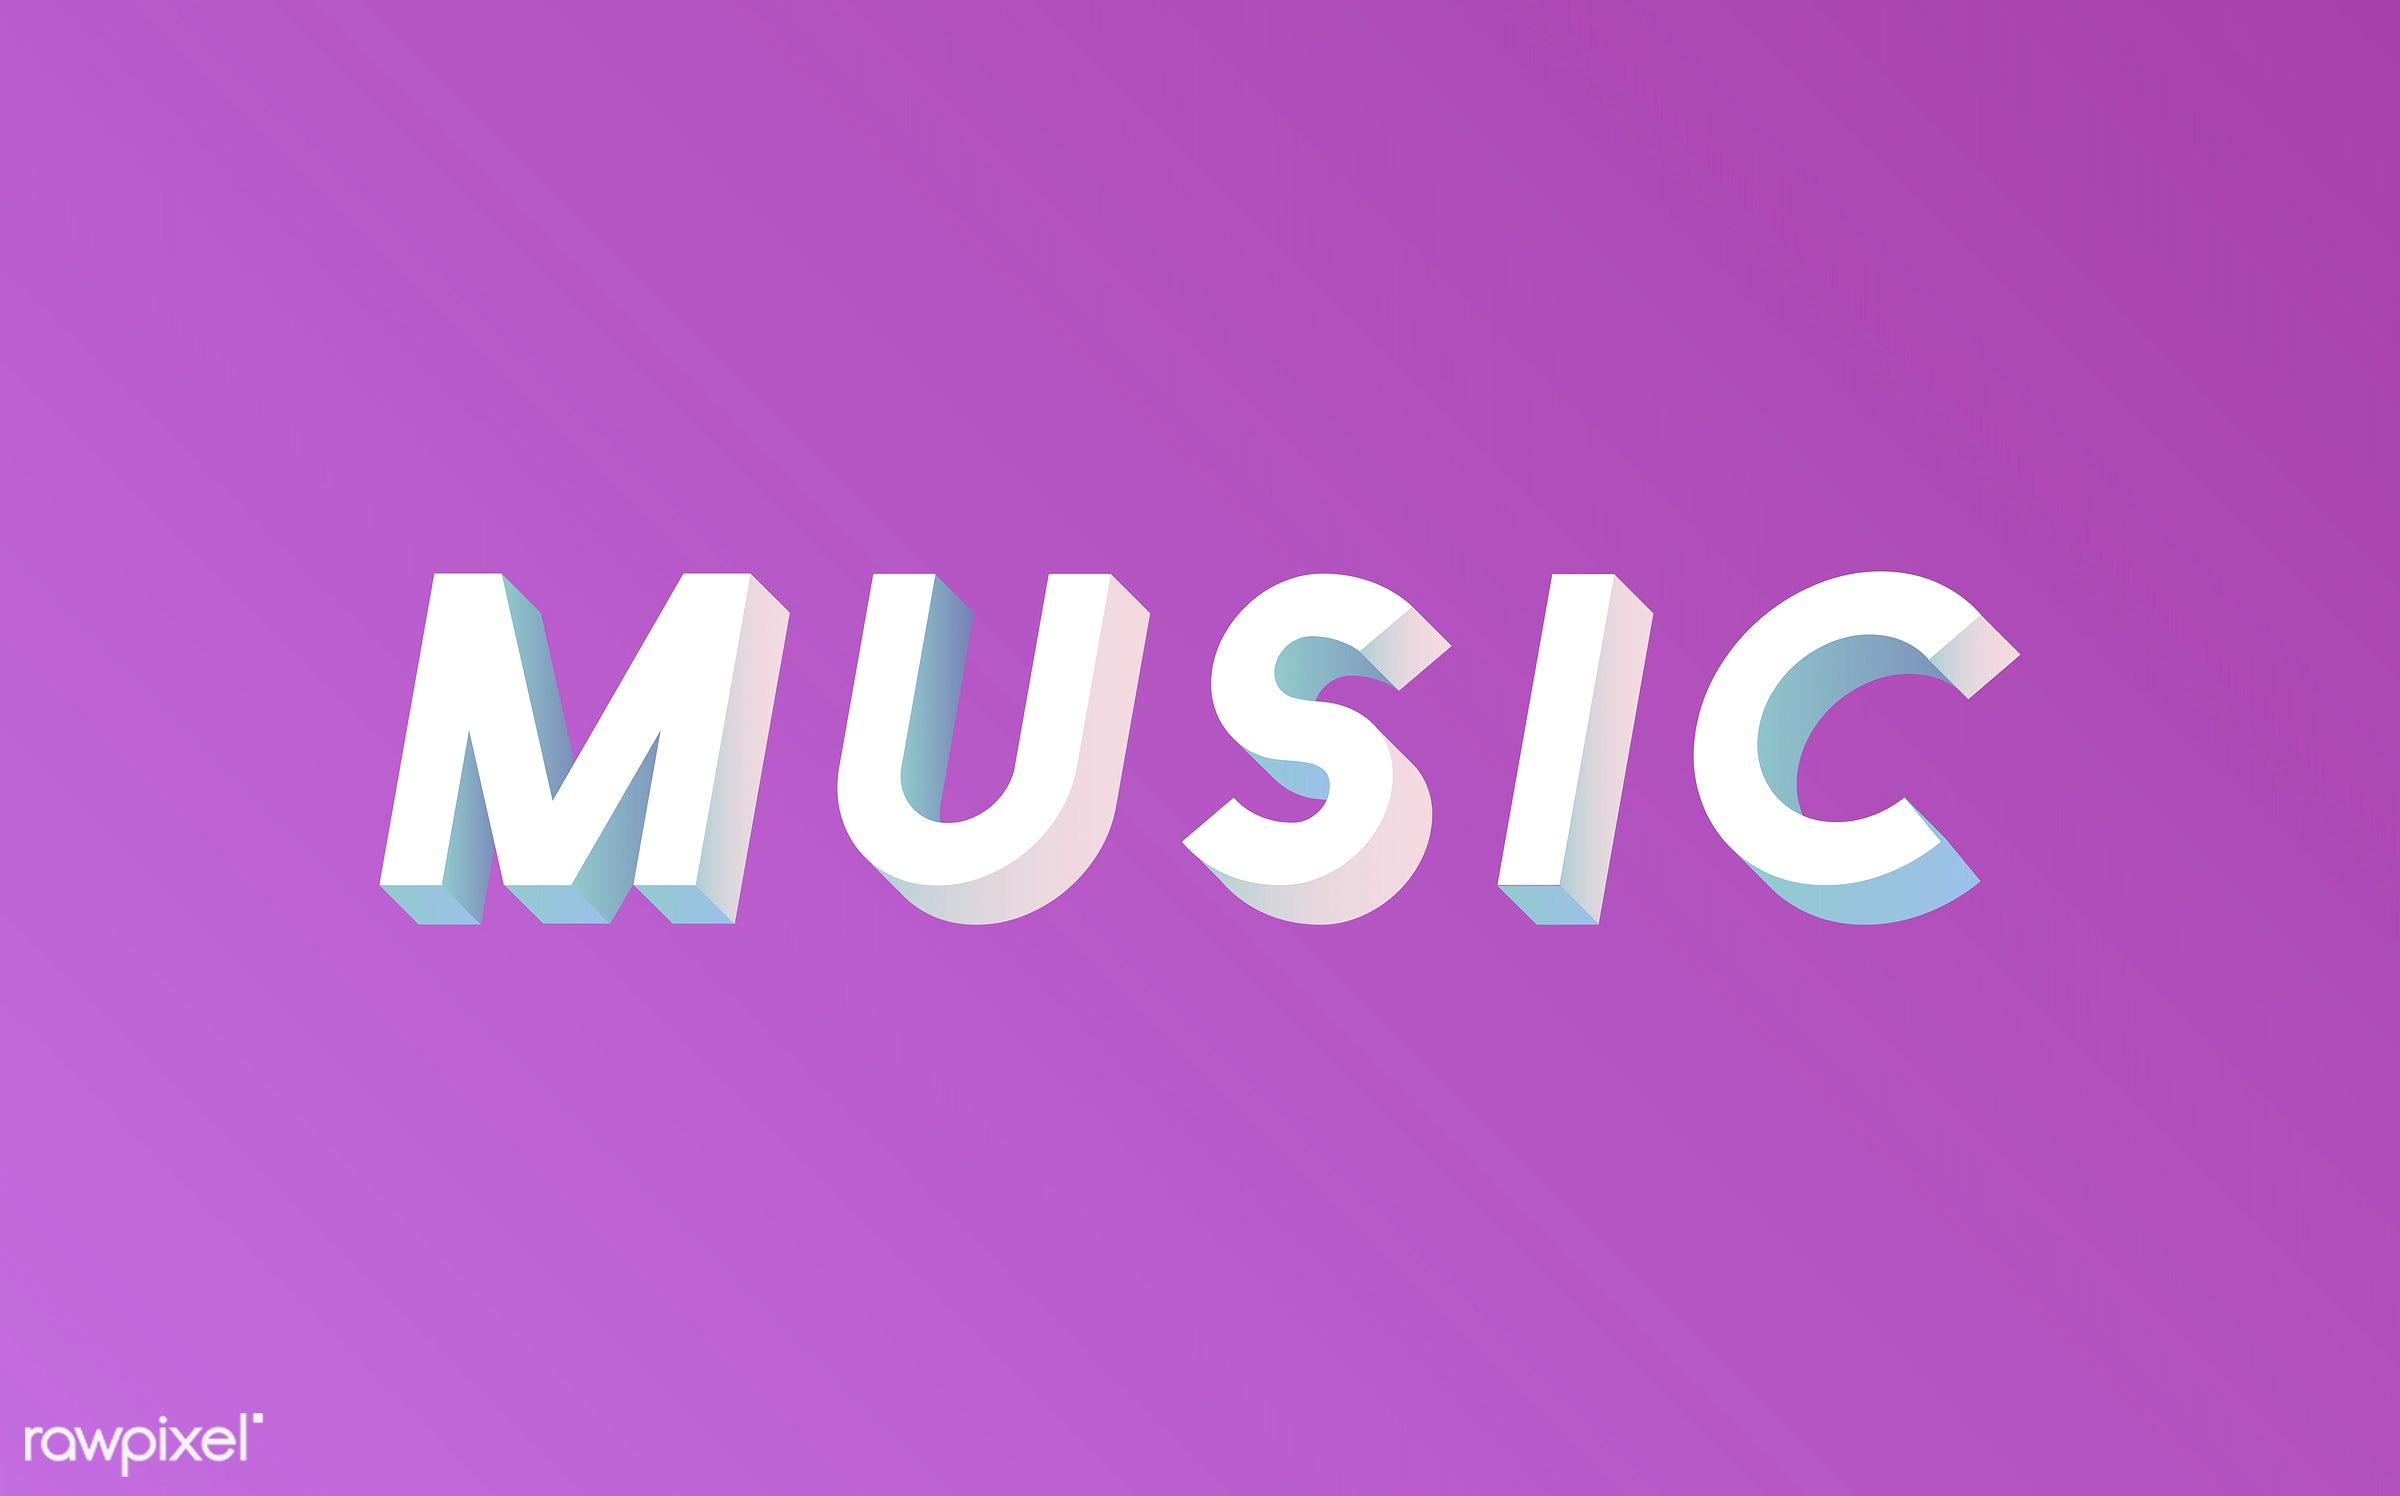 3d, colorful, graphic, illustration, music, neon, pink, three dimensional, vector, white, word